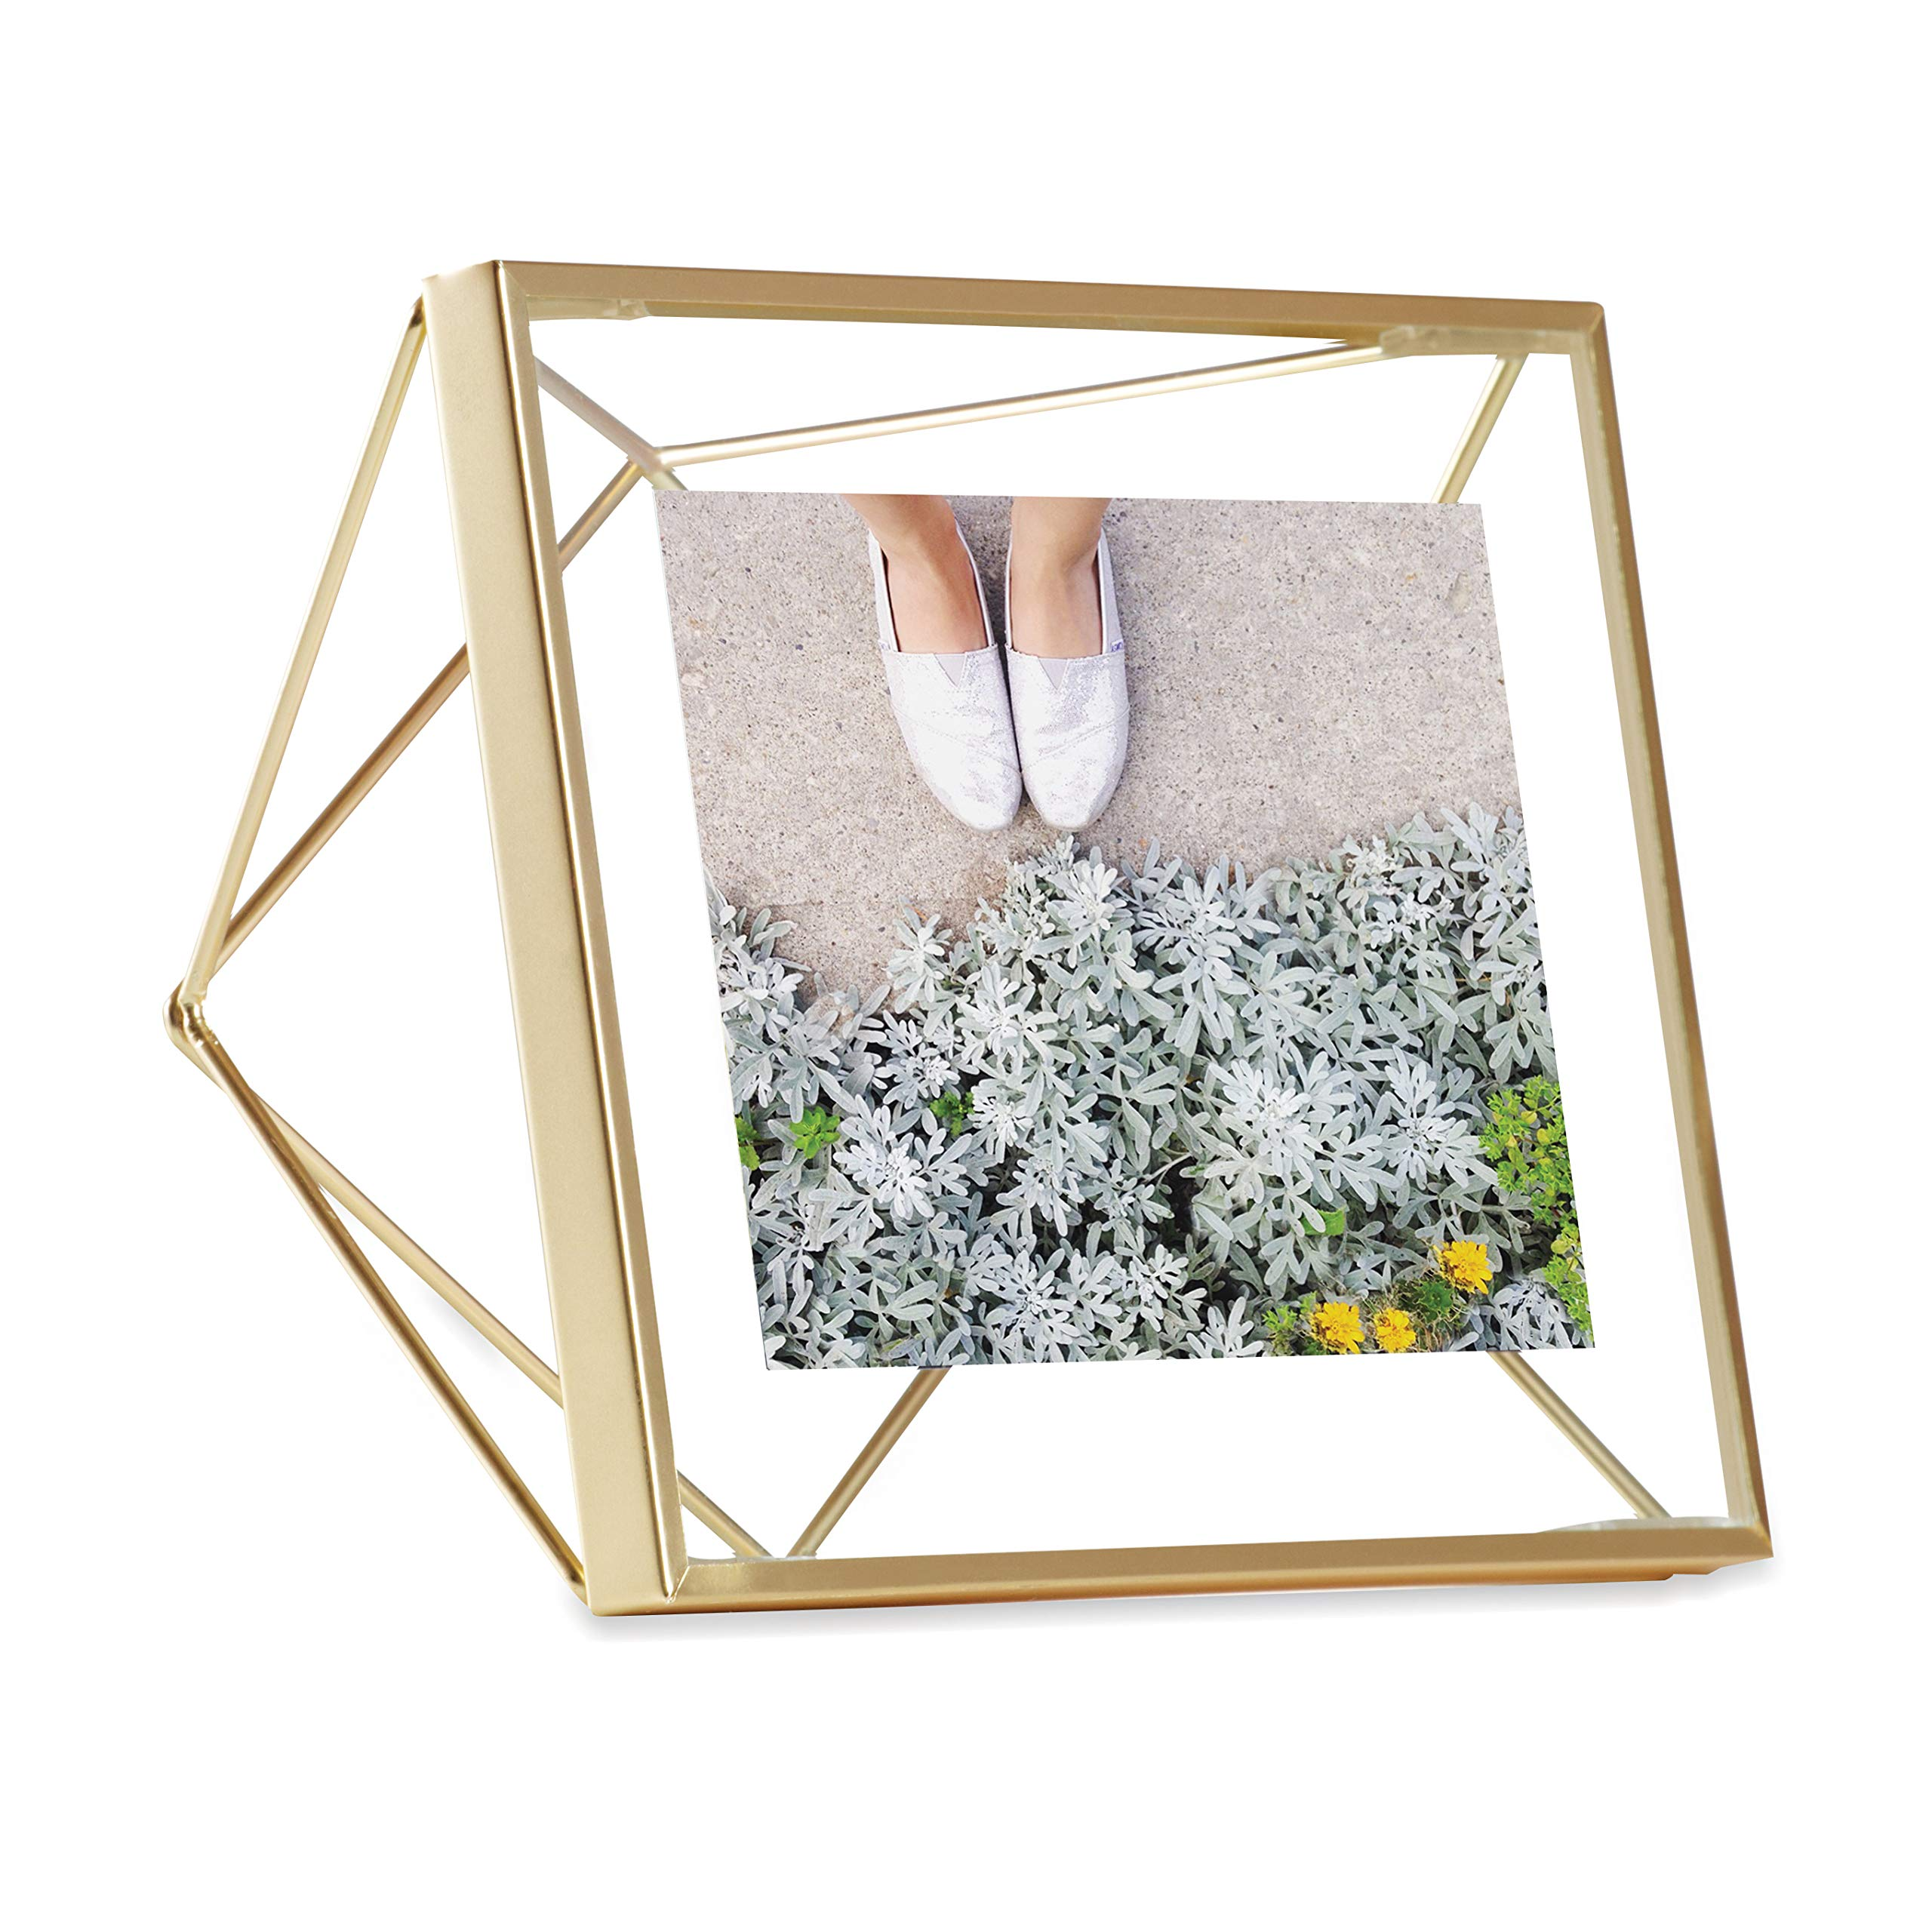 Umbra Prisma 4x4 Picture Frame for Desktop or Wall, Holds One 4''x4'' Photo, Matte Brass by Umbra